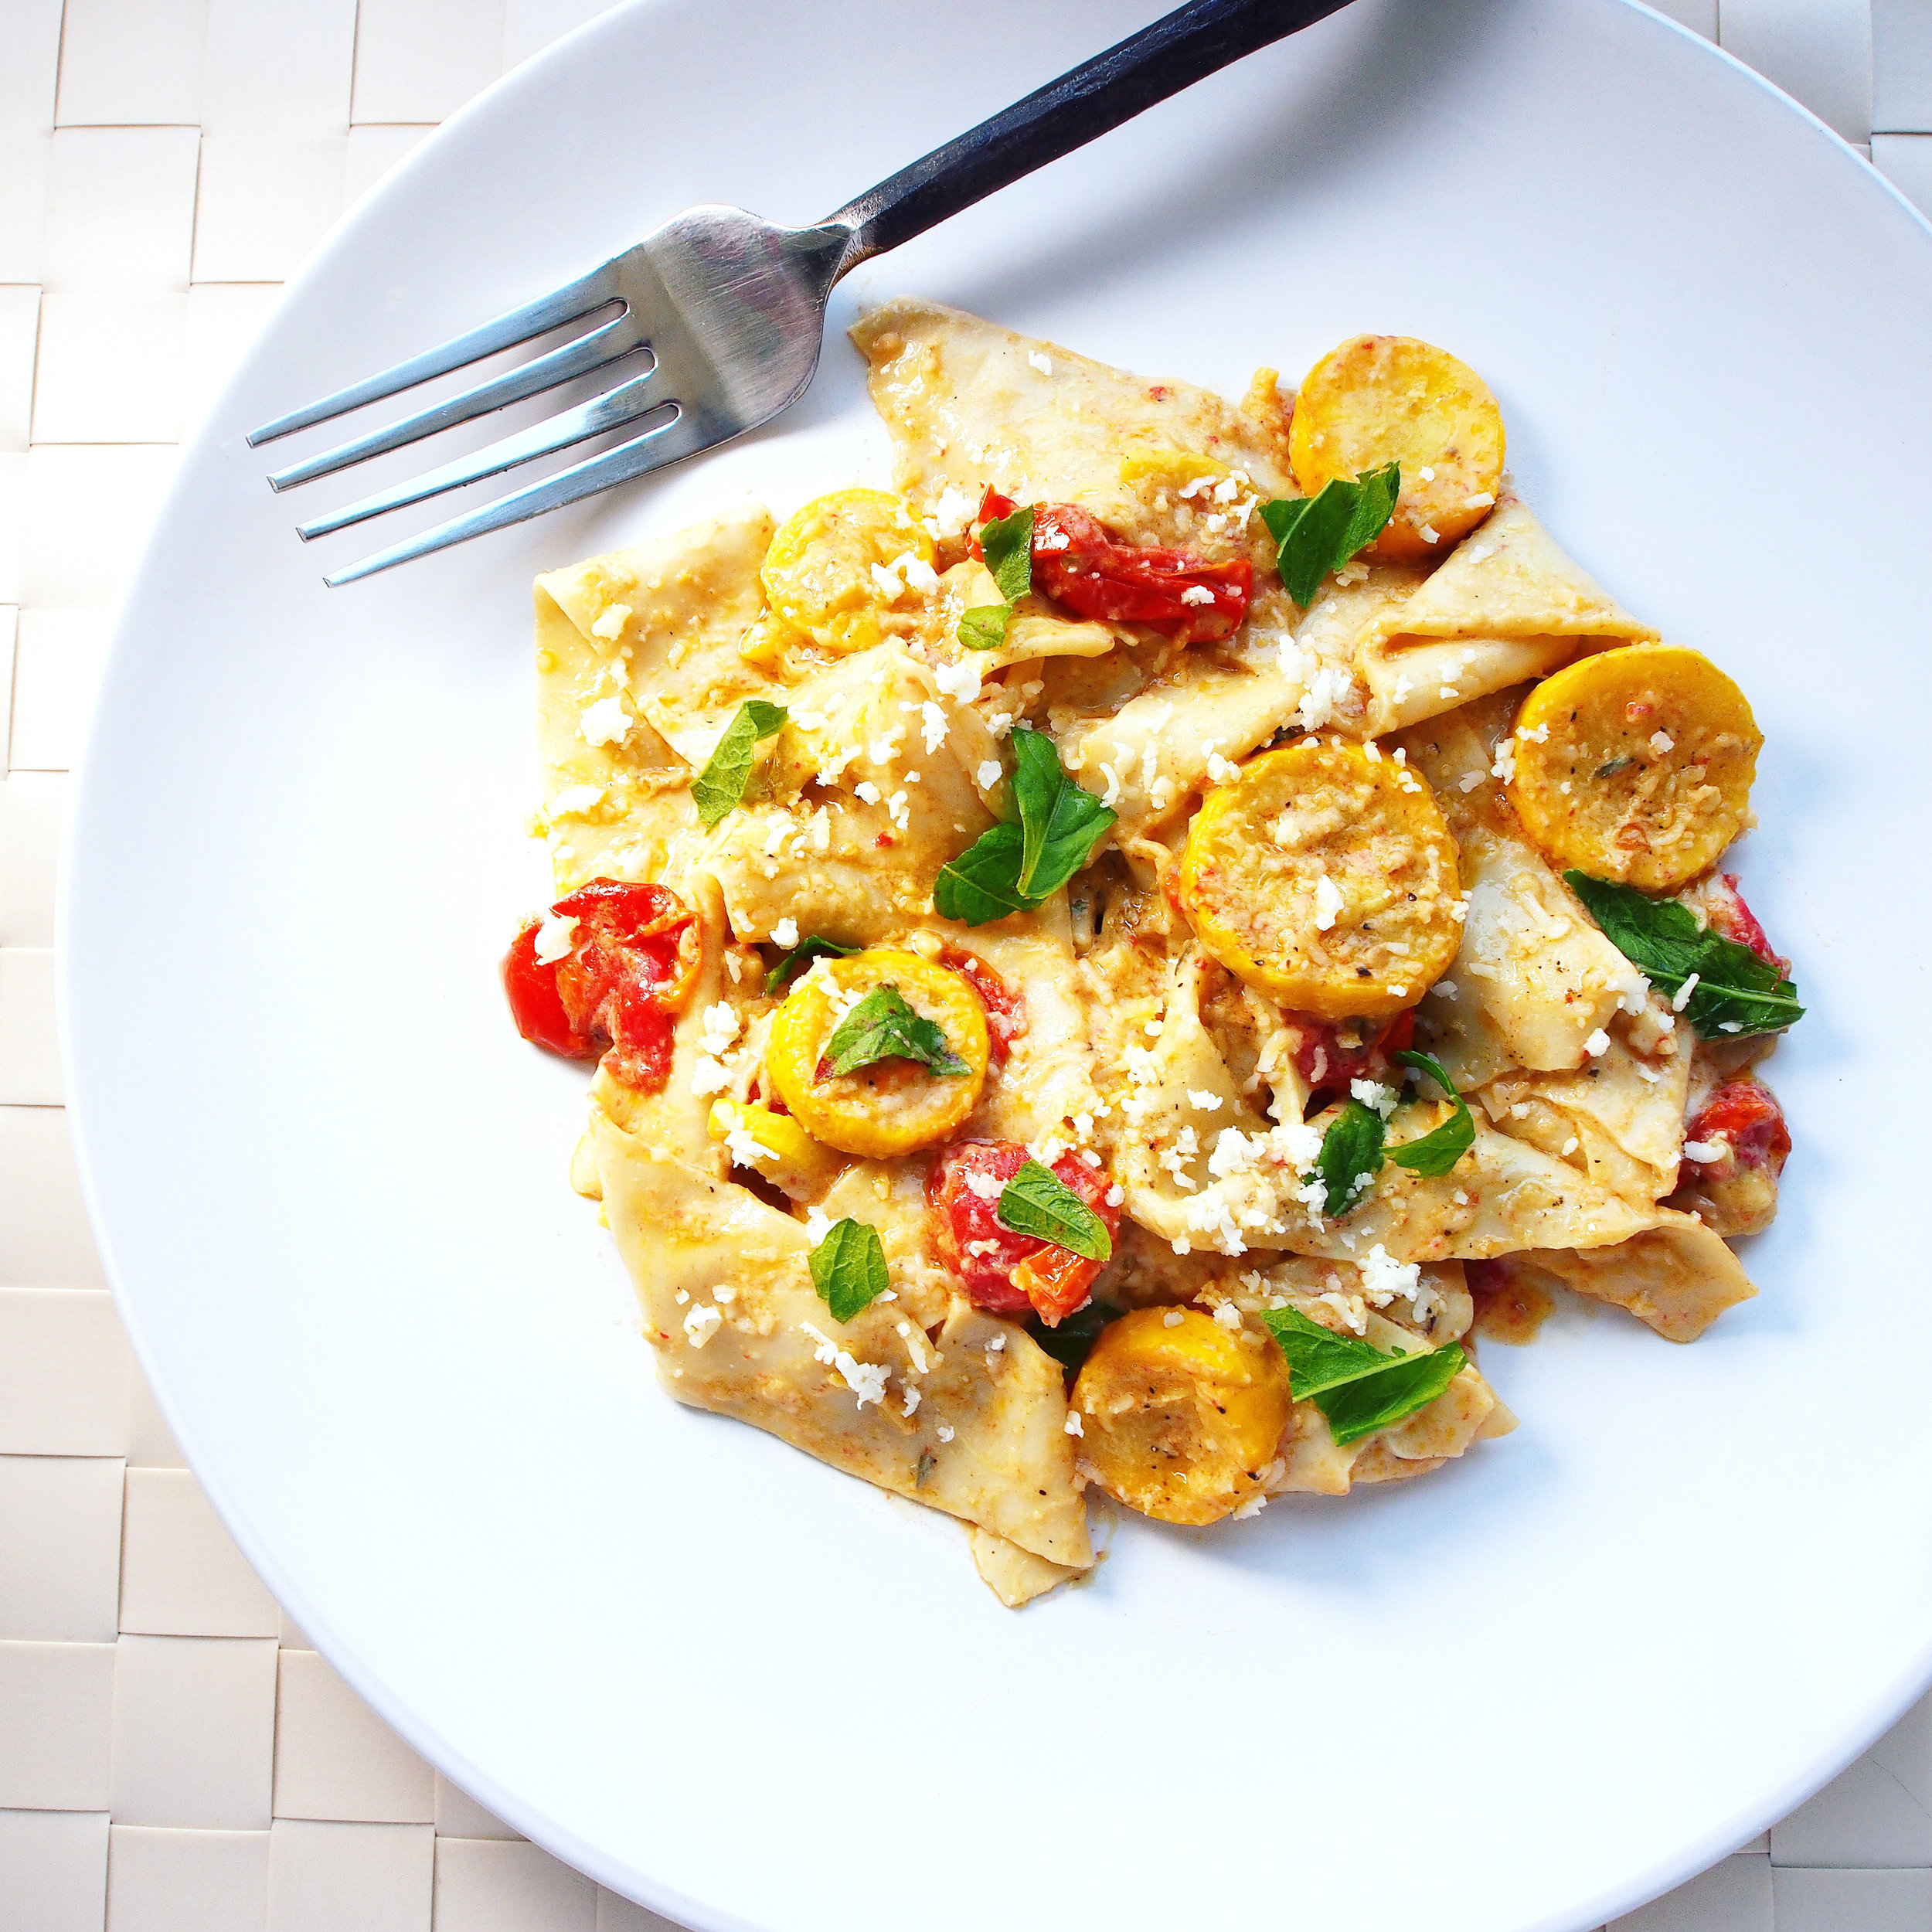 This summer squash pasta is actually a great pasta for any season. This vegetarian pasta has squash, tomatoes, basil and/or epaote, pecorino cheese, and thyme. It's a quick and easy pasta perfect for a summer dinner or with winter ingredients, even a Christmas pasta!